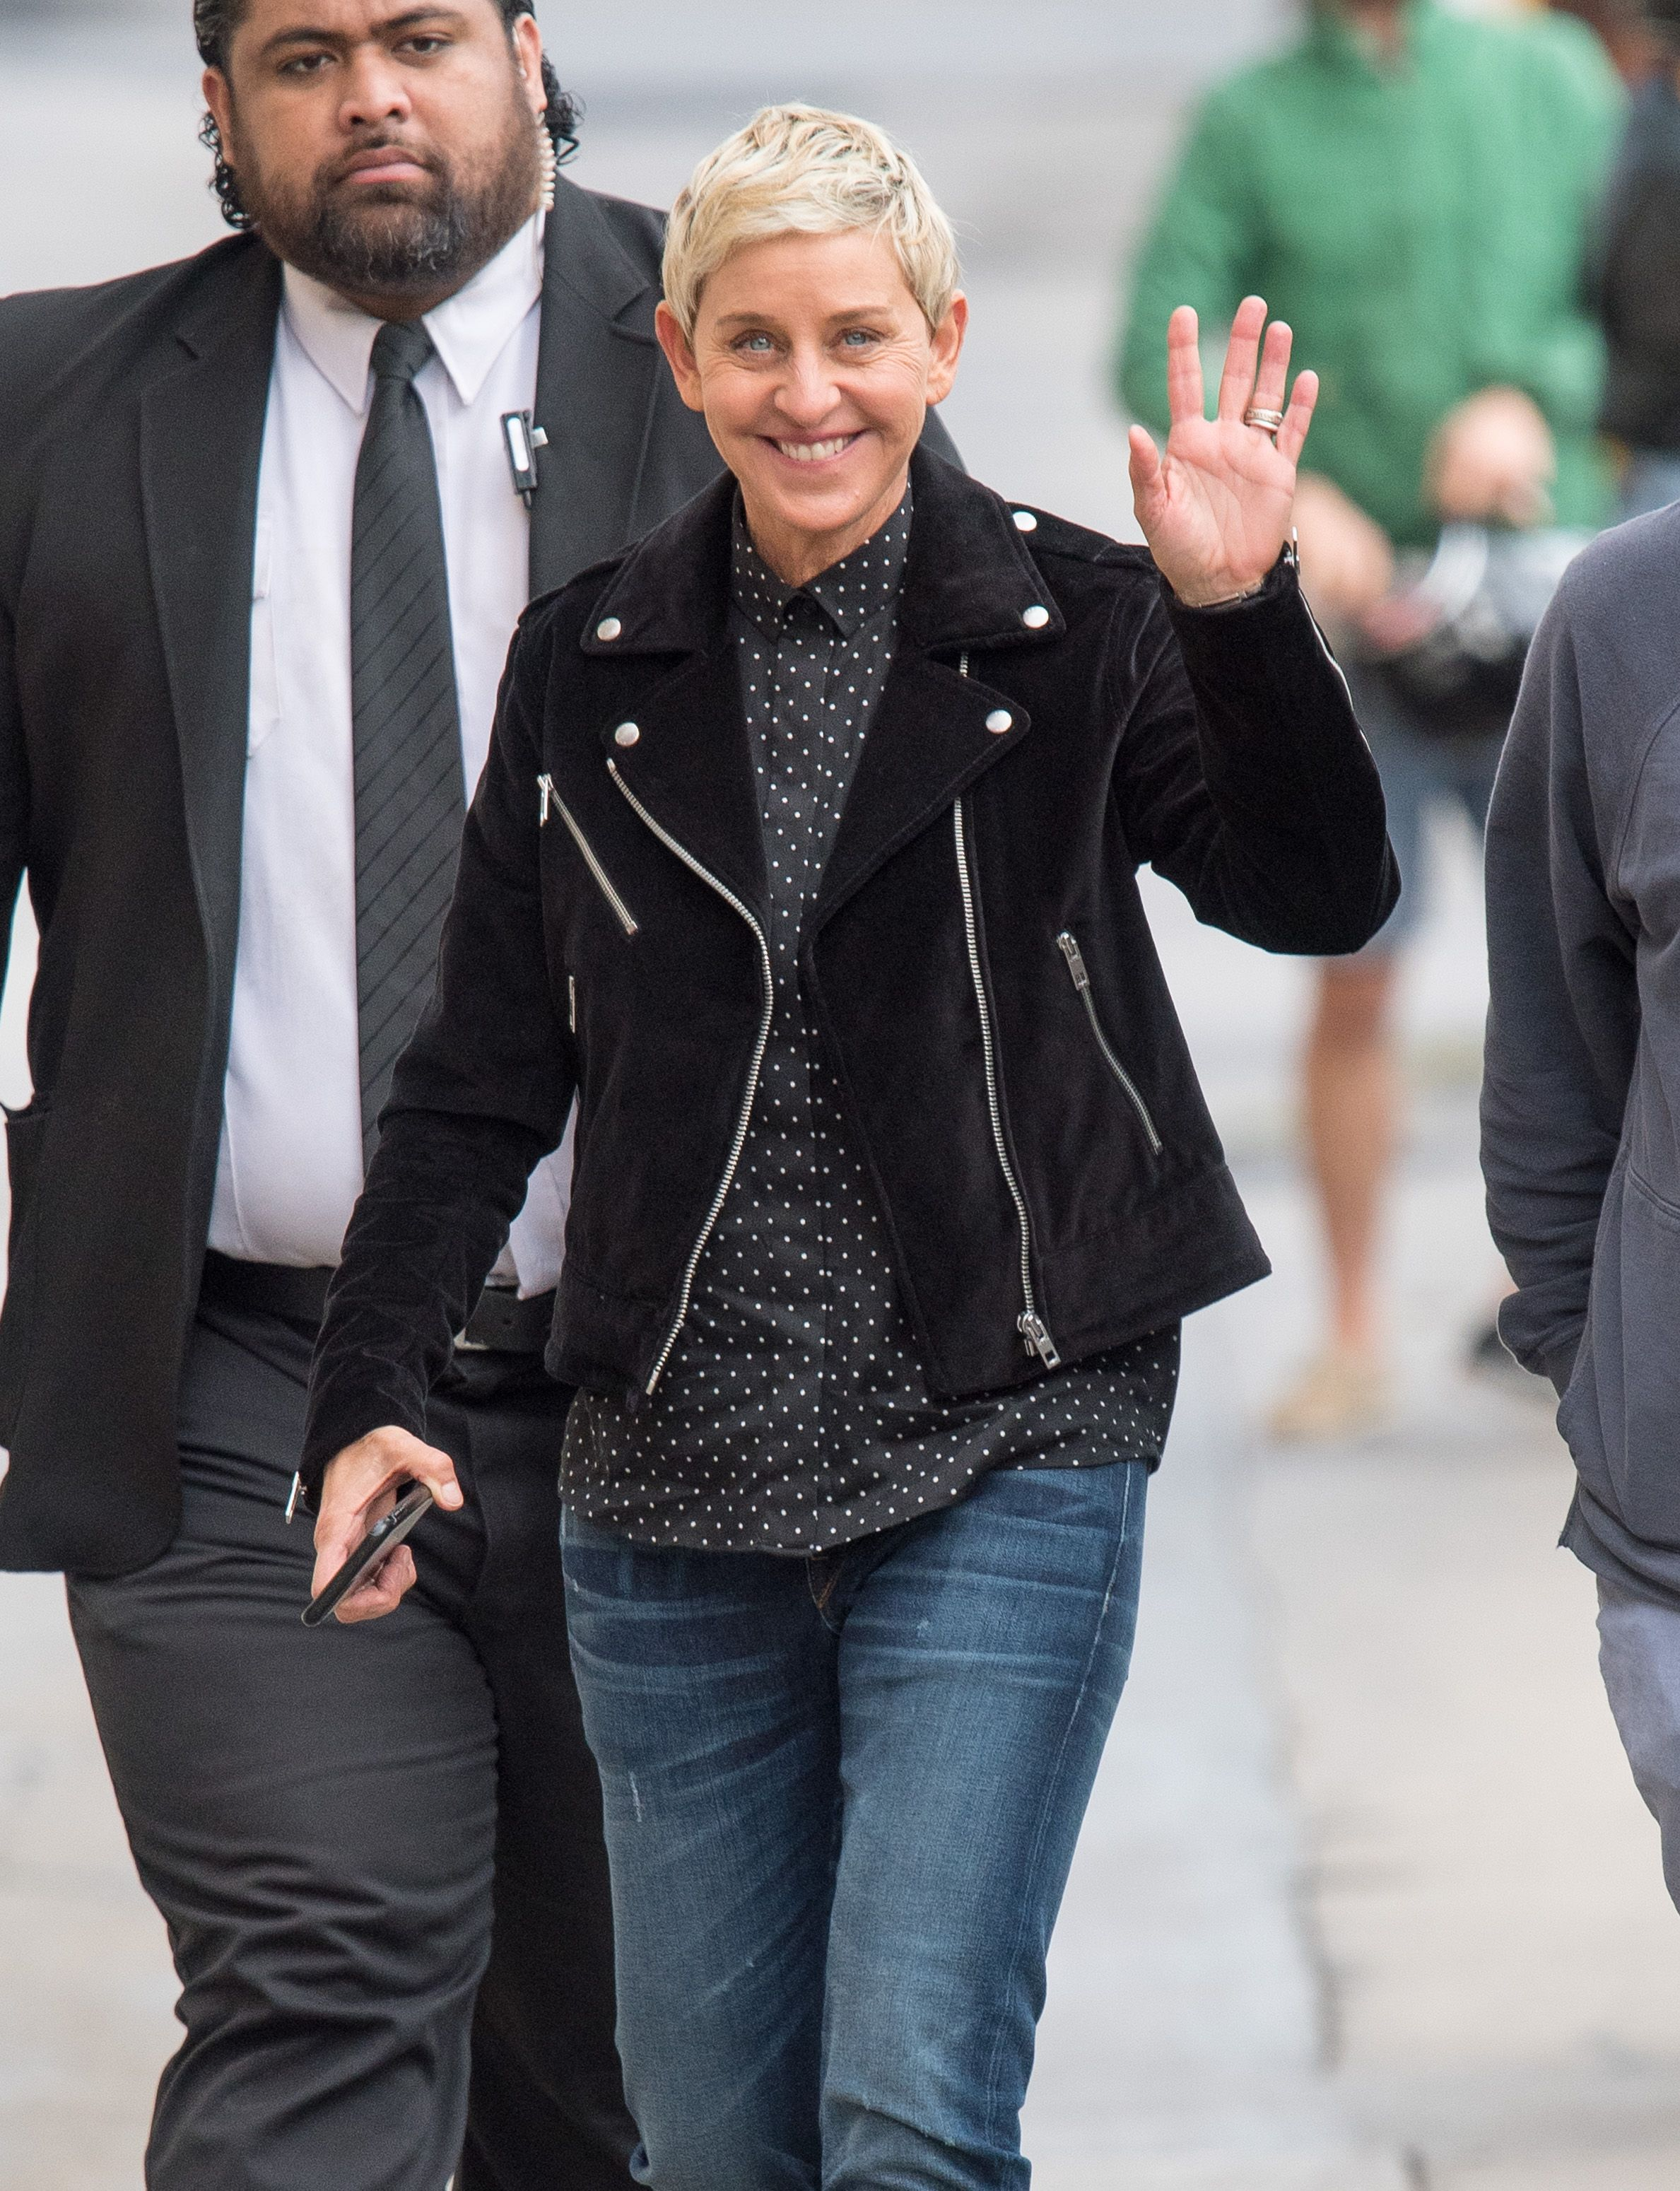 A lovely photo showing Ellen DeGeneres waving at a someone on the street and she has on a polka dot button-down shirt with a black jacket and blue denim pant.